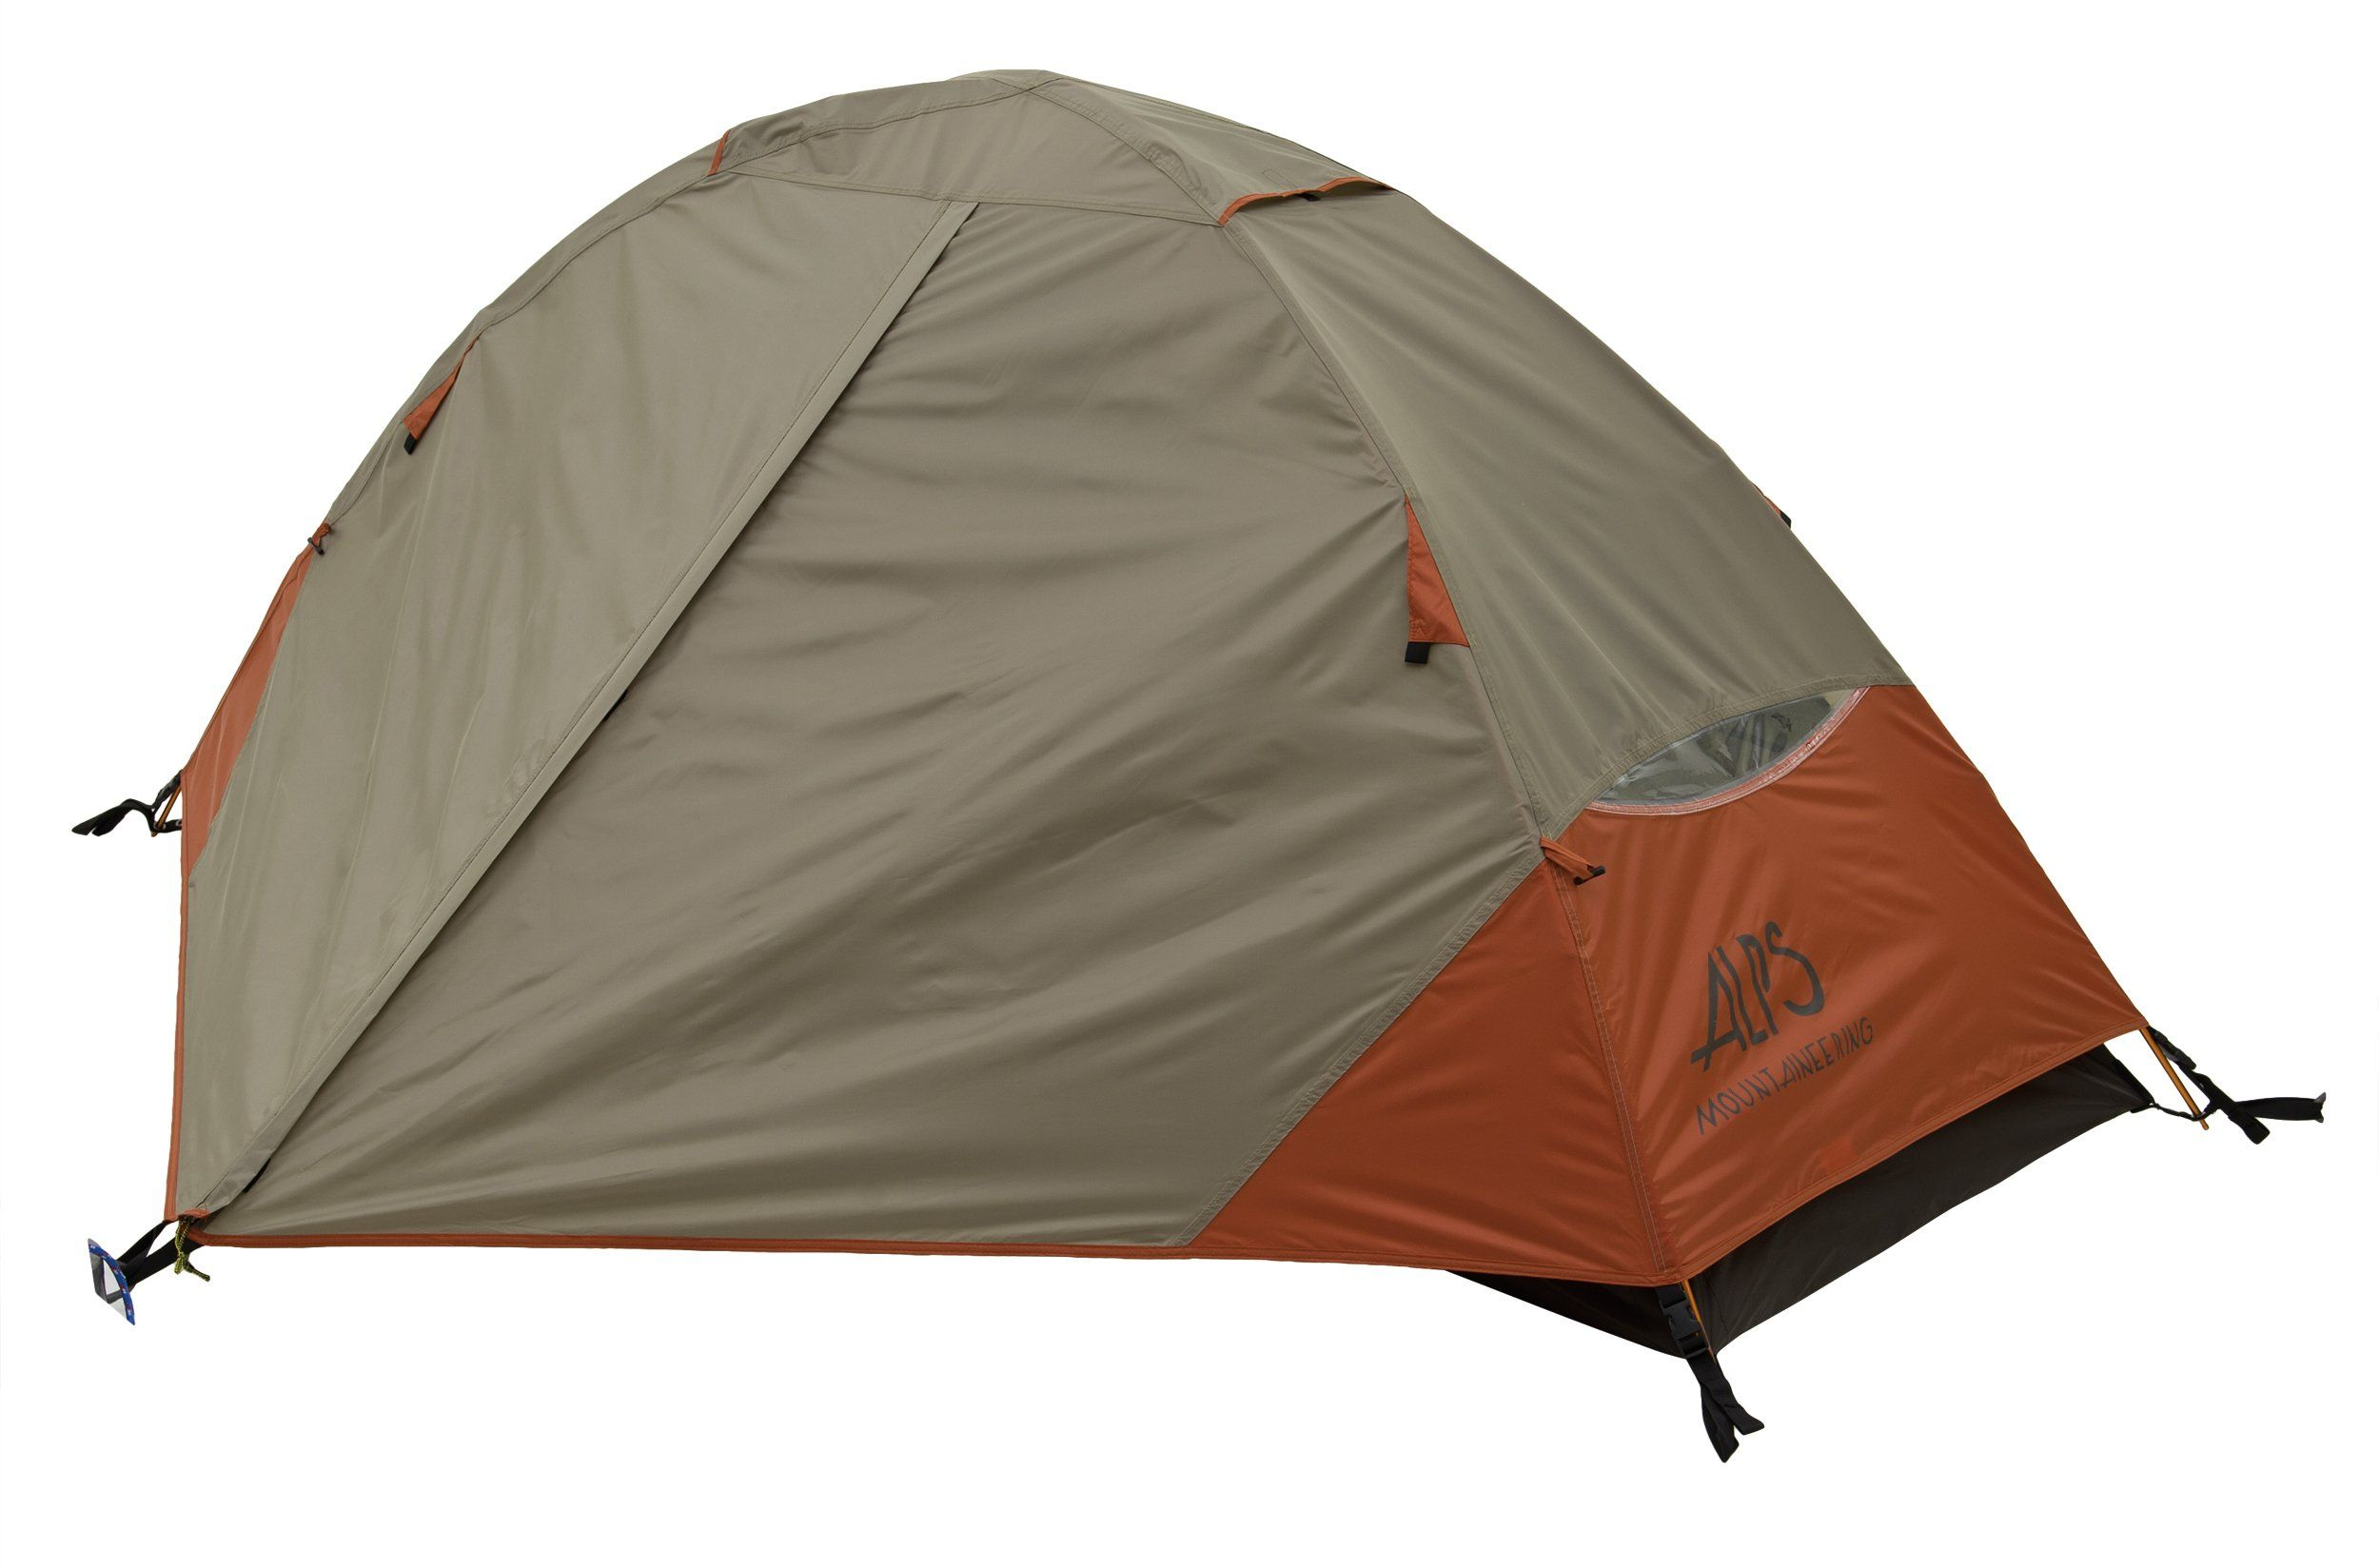 Amazon.com  ALPS Mountaineering 5024617 Lynx 1-Person Tent  Backpacking Tents   sc 1 st  Pinterest : one person tents backpacking - memphite.com